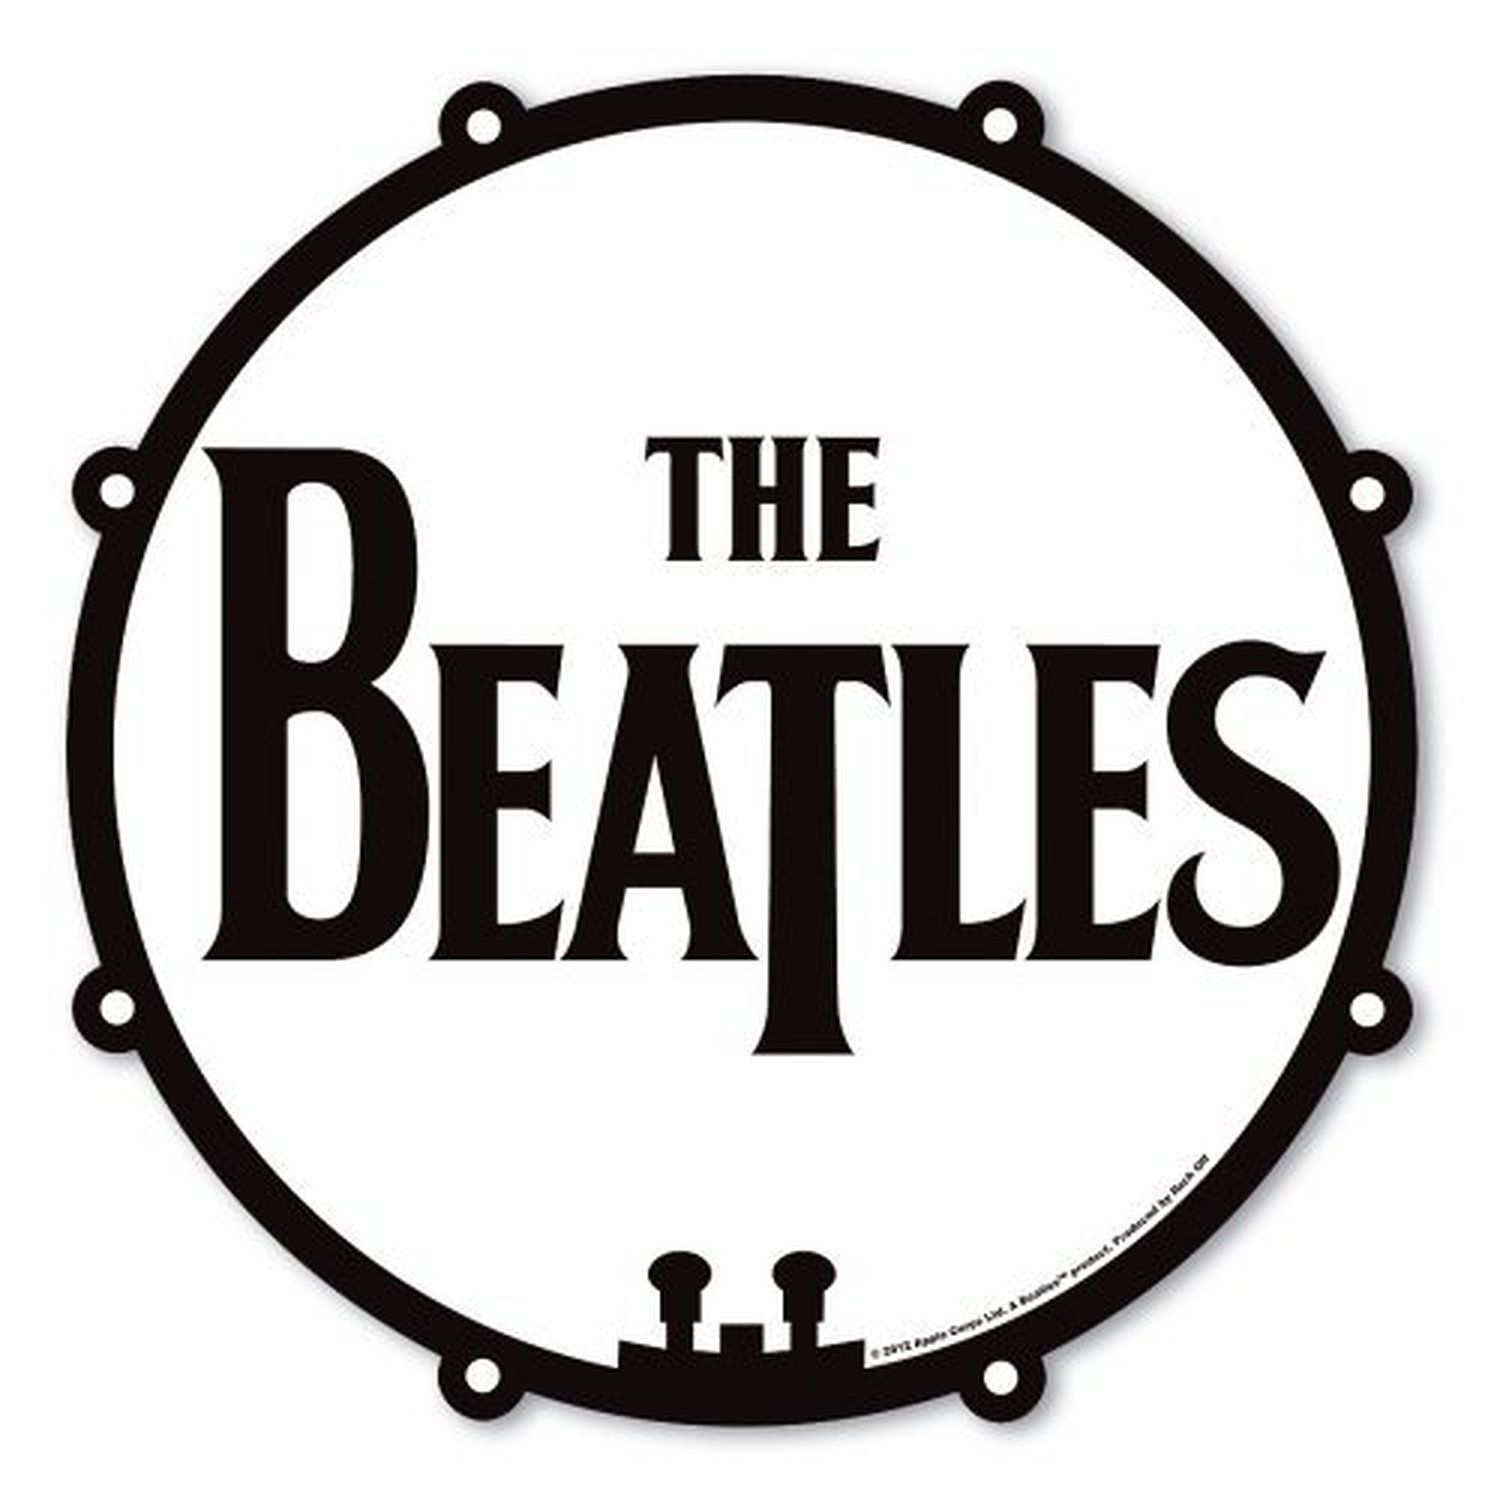 The Beatles Logo - Details about The Beatles Drum Logo Drop T Black White Mouse Mat Gaming Pad  Official Gift Idea